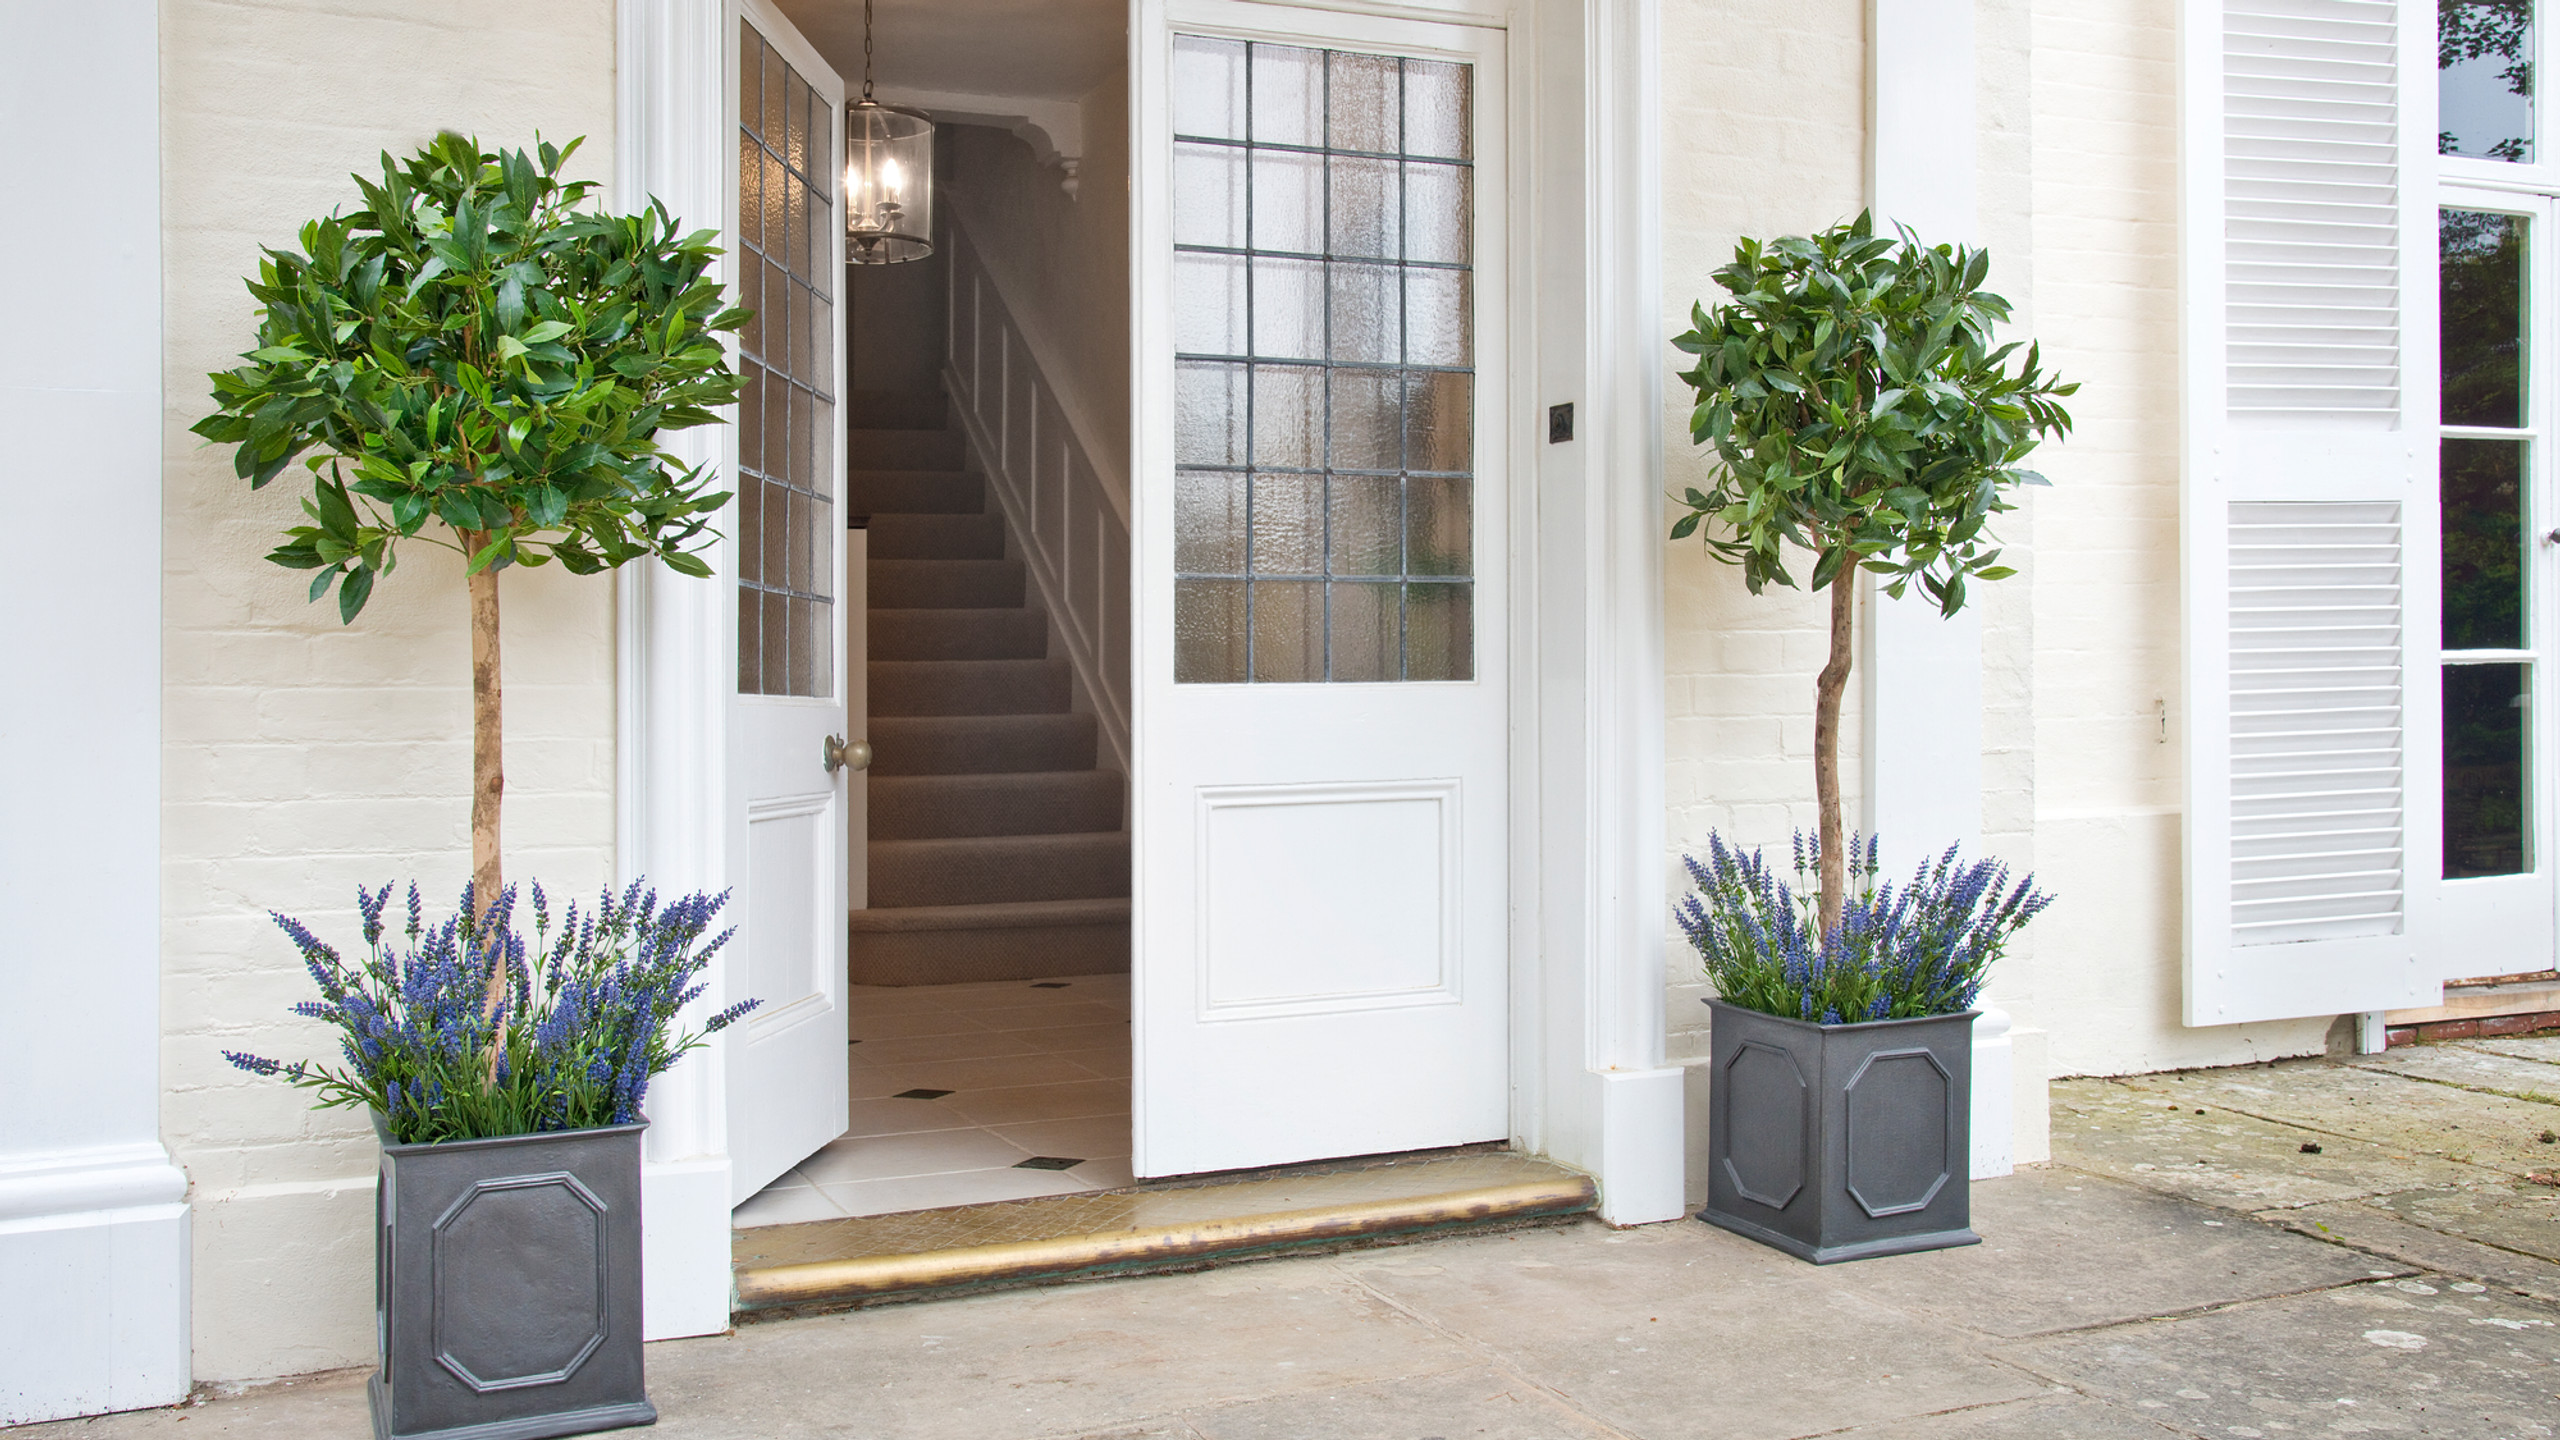 Artificial Bay Trees in Doorway